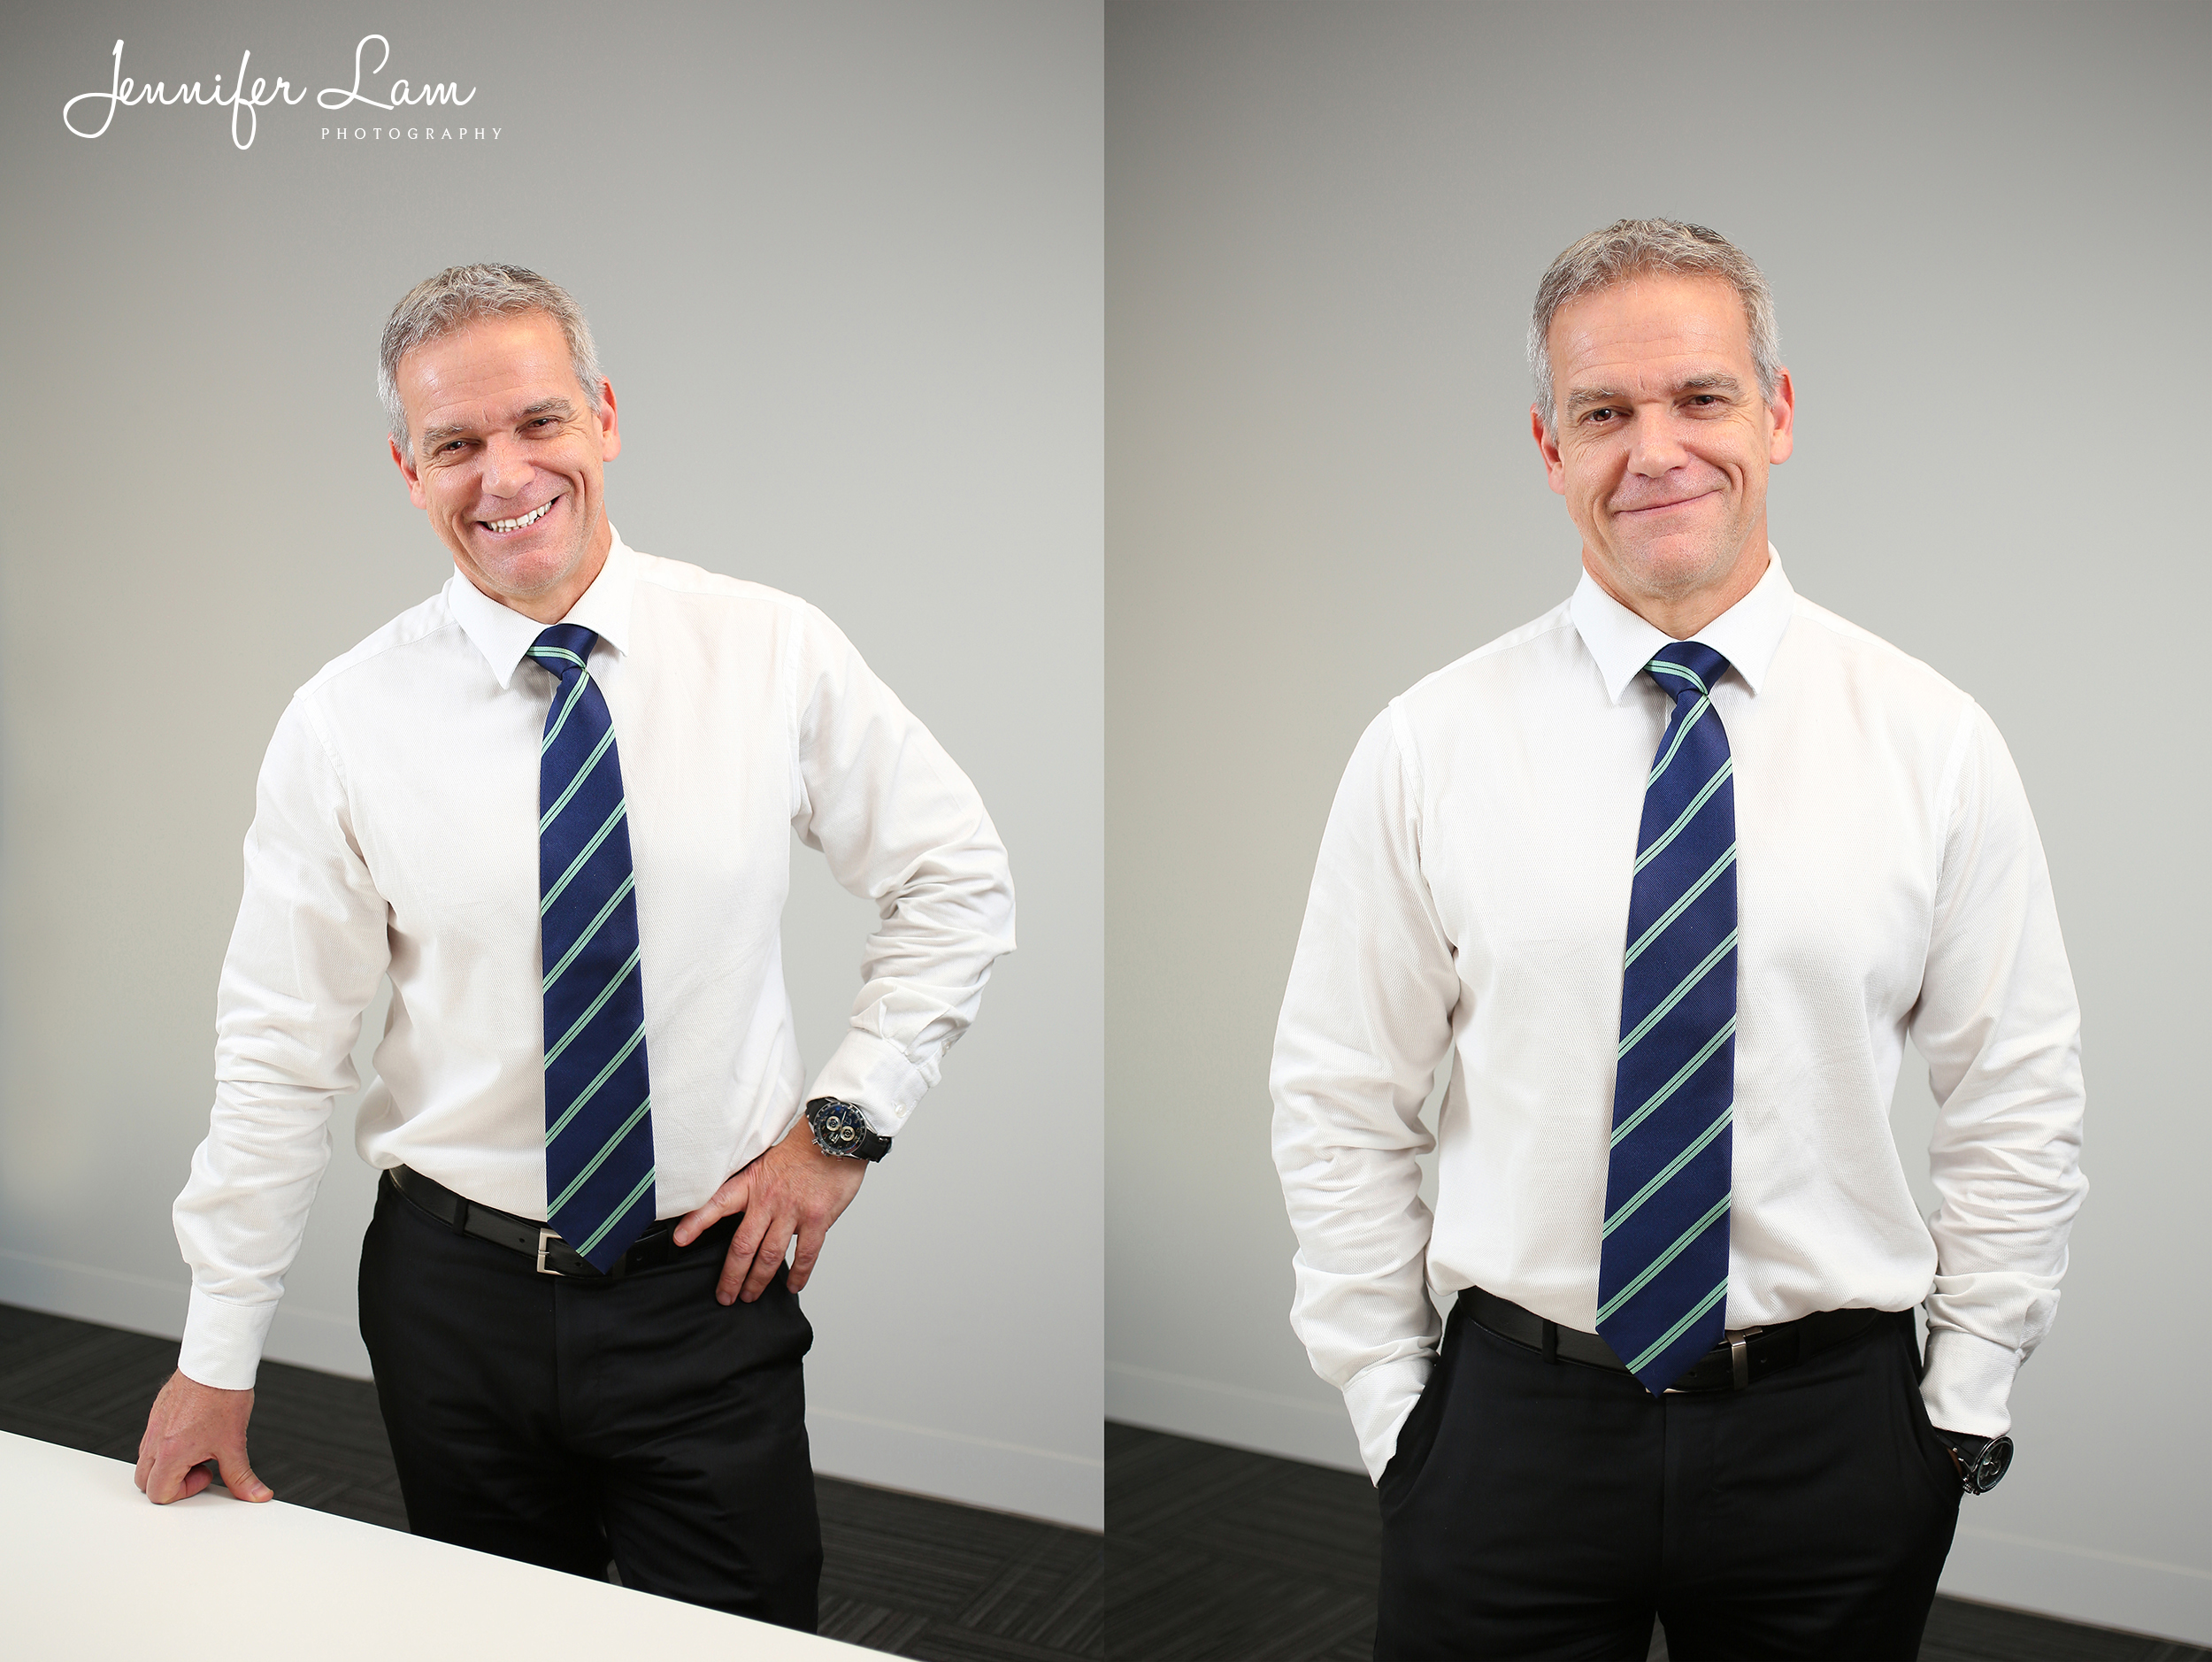 Gateway Credit Union (Corporate Portraits) By Jennifer Lam Photography (8).JPG